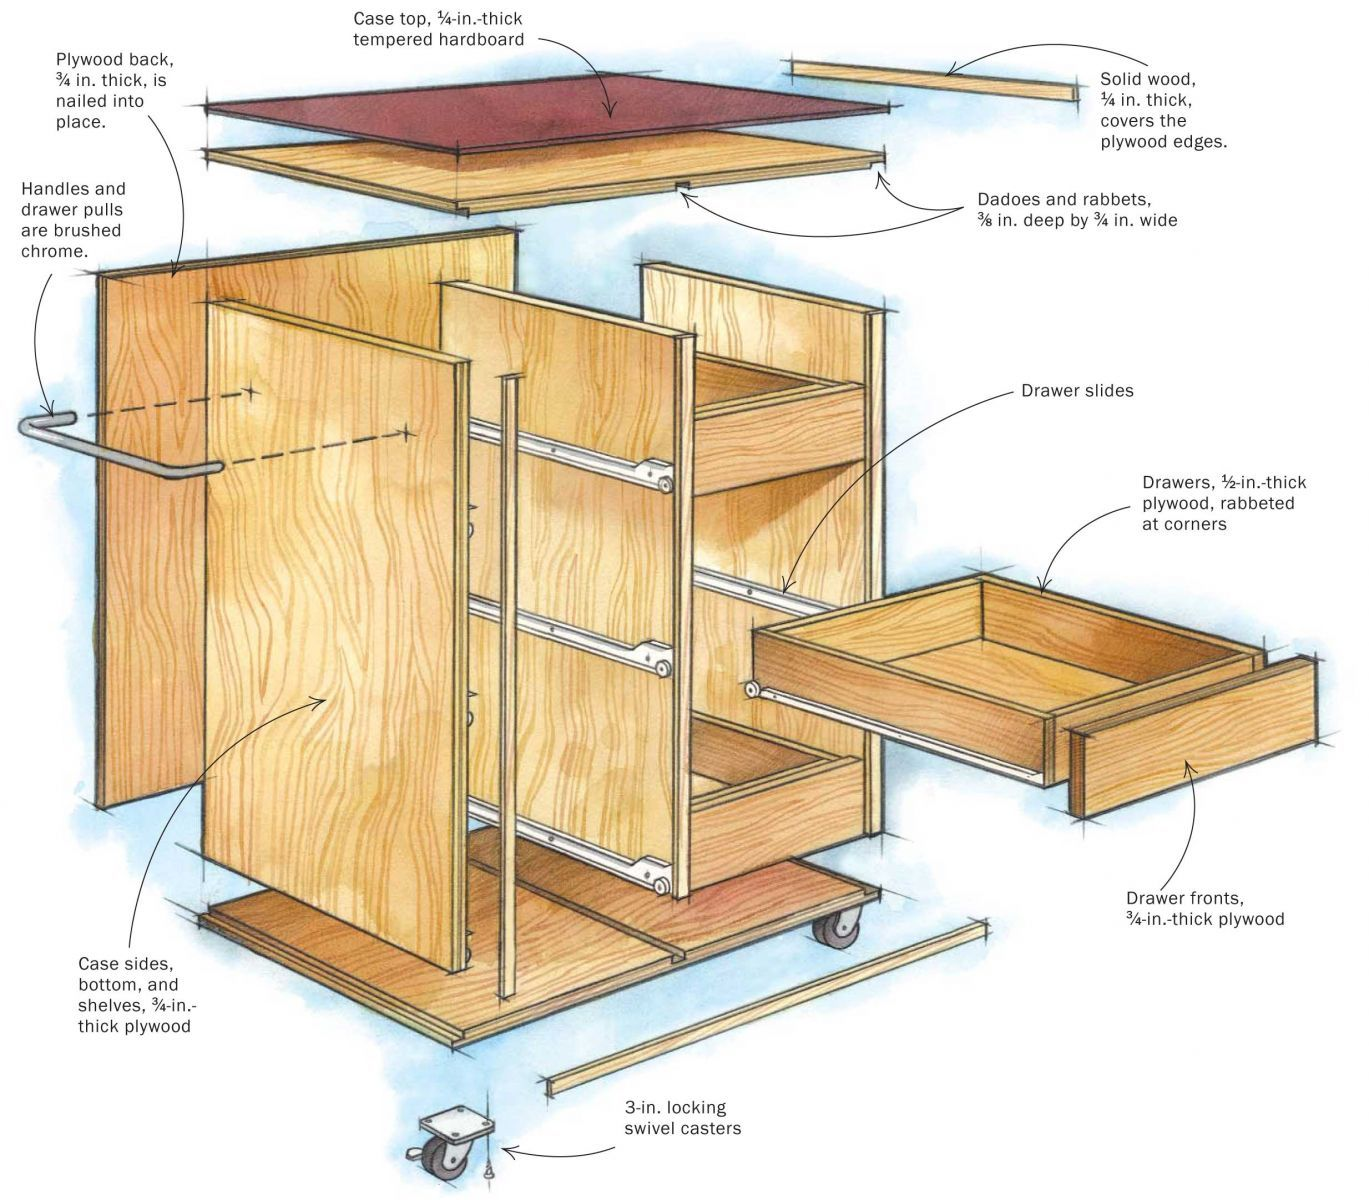 Kitchen Cabinet Layout Tools Plywood Shop Projects Shopnotes Magazine Storage